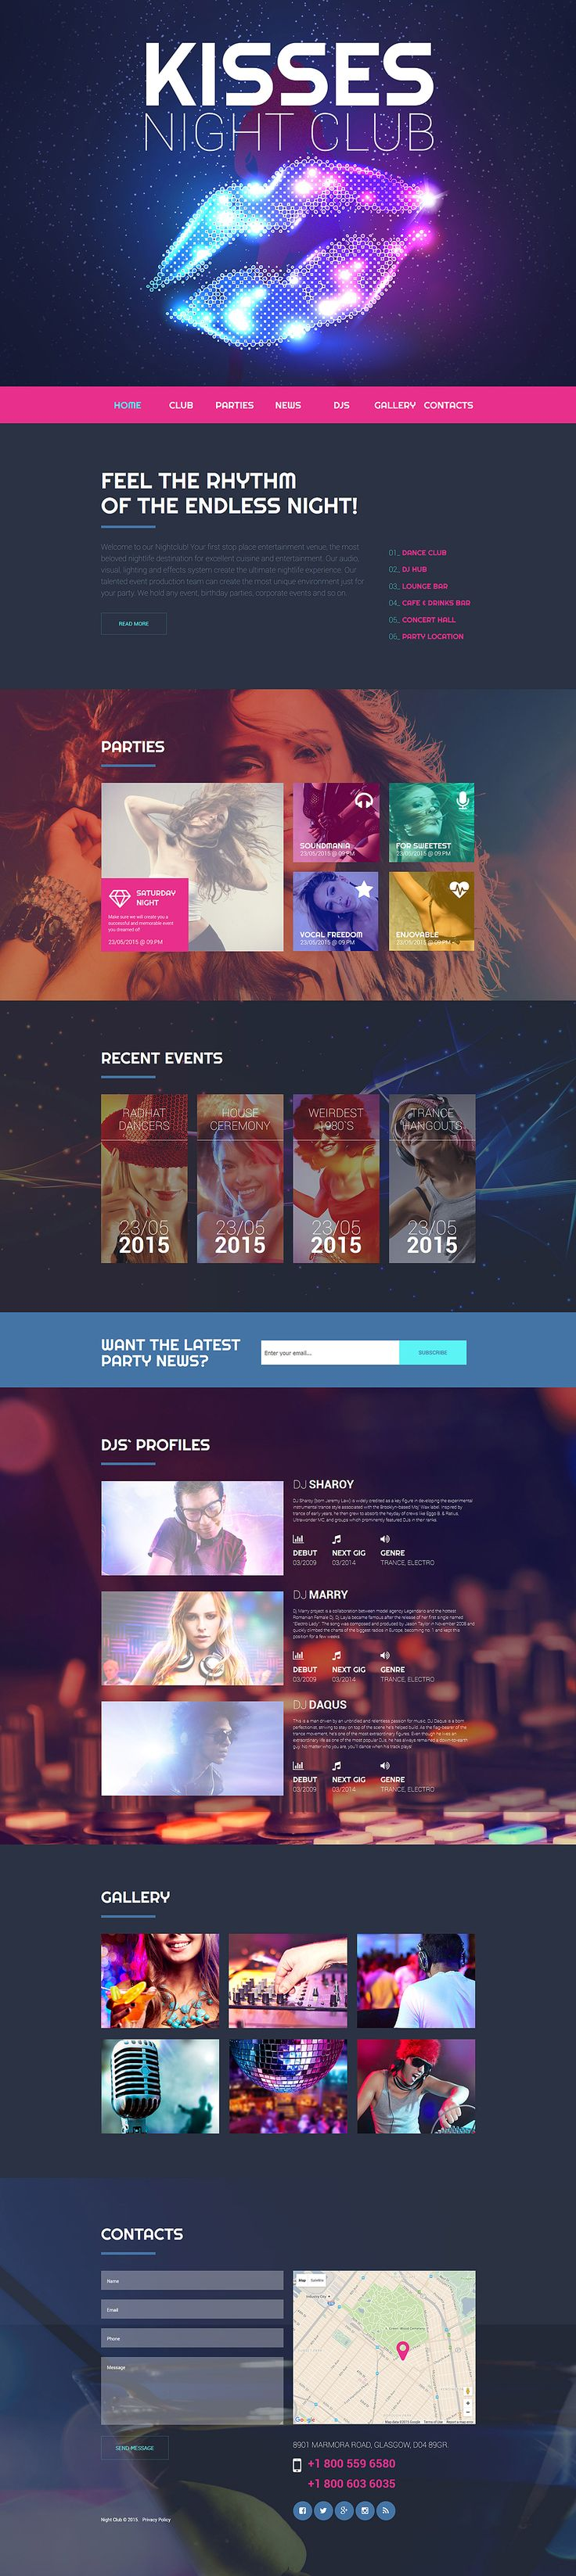 Nighttime Entertainment Website Template #nightclub http://www.templatemonster.com/website-templates/55735.html?utm_source=pinterest&utm_medium=timeline&utm_campaign=55735